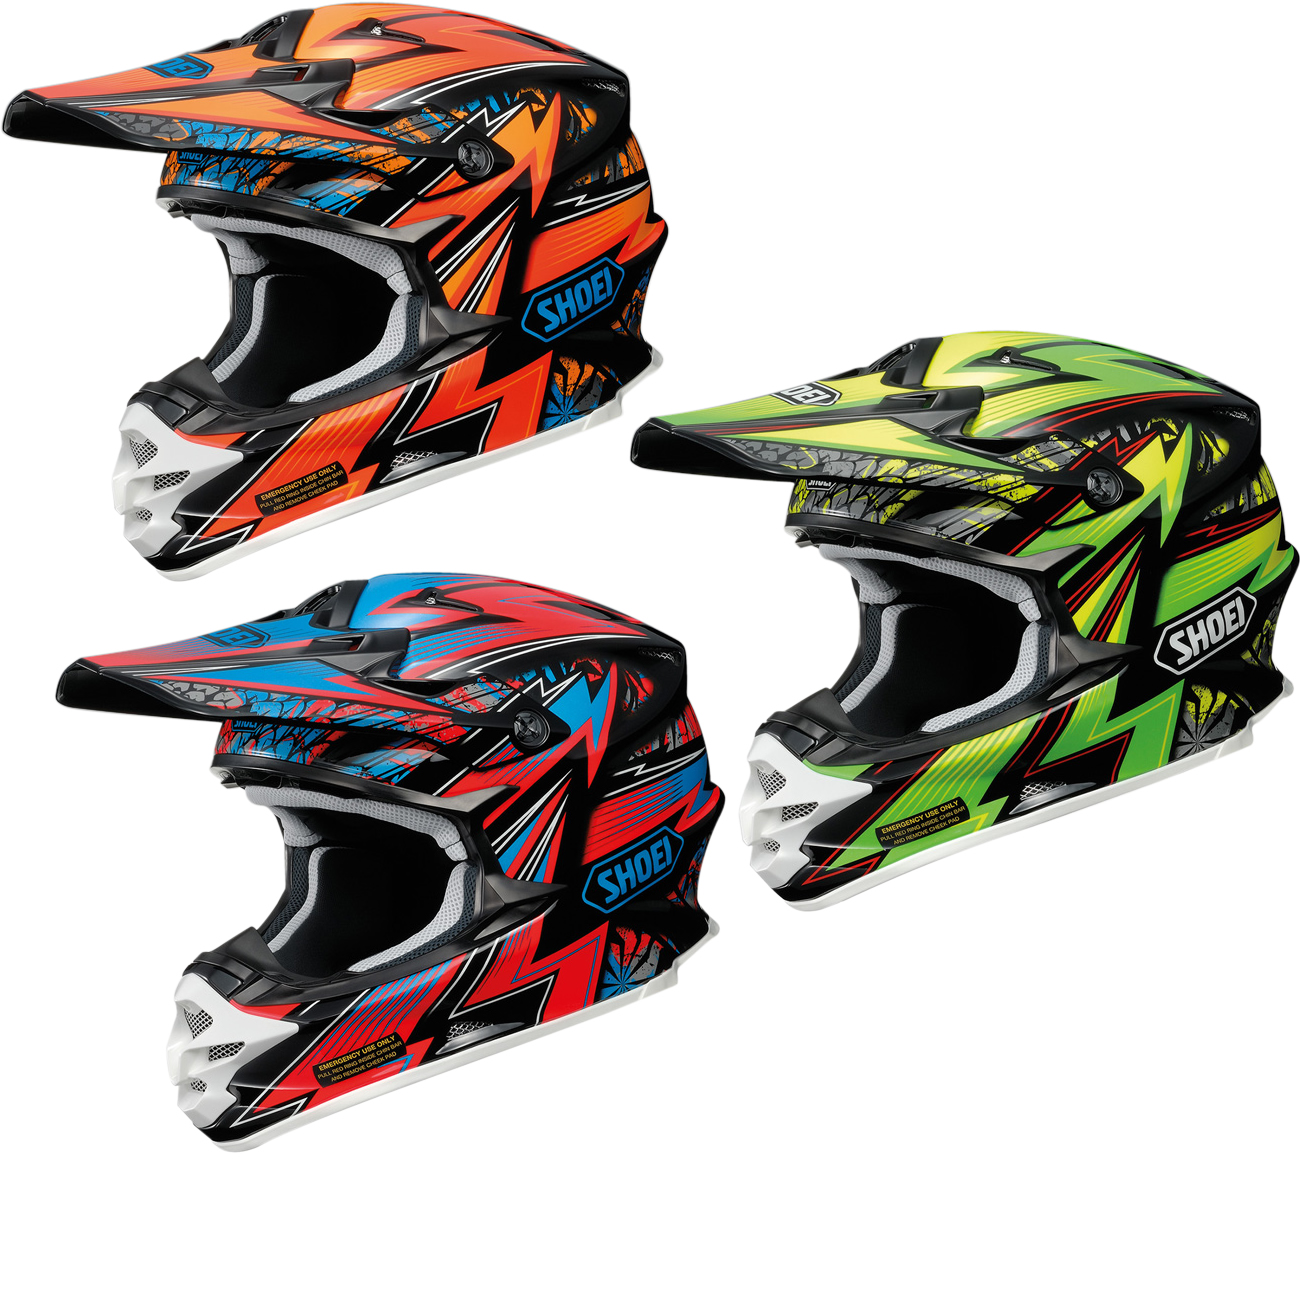 shoei vfx w maelstrom motocross helmet motocross helmets. Black Bedroom Furniture Sets. Home Design Ideas